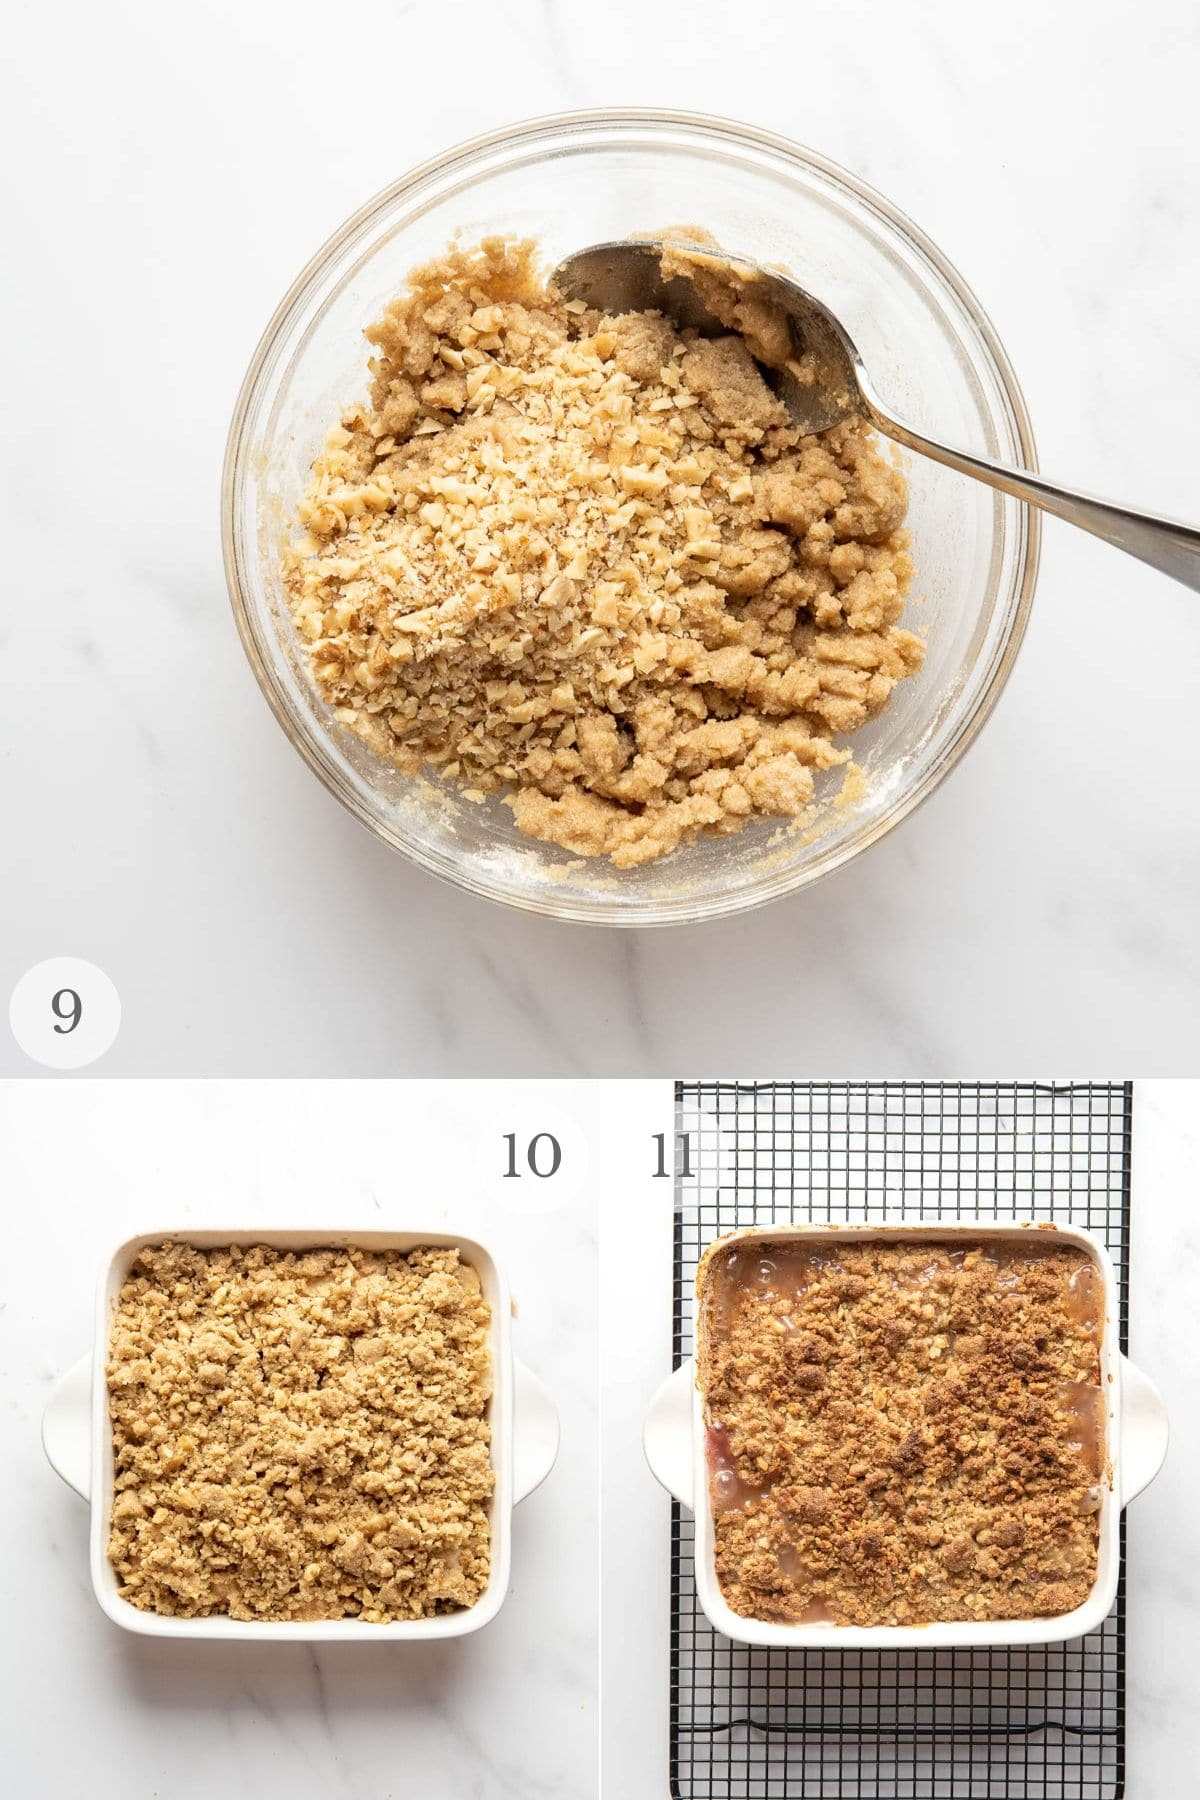 peach crumble recipe steps collage: baking and cooling